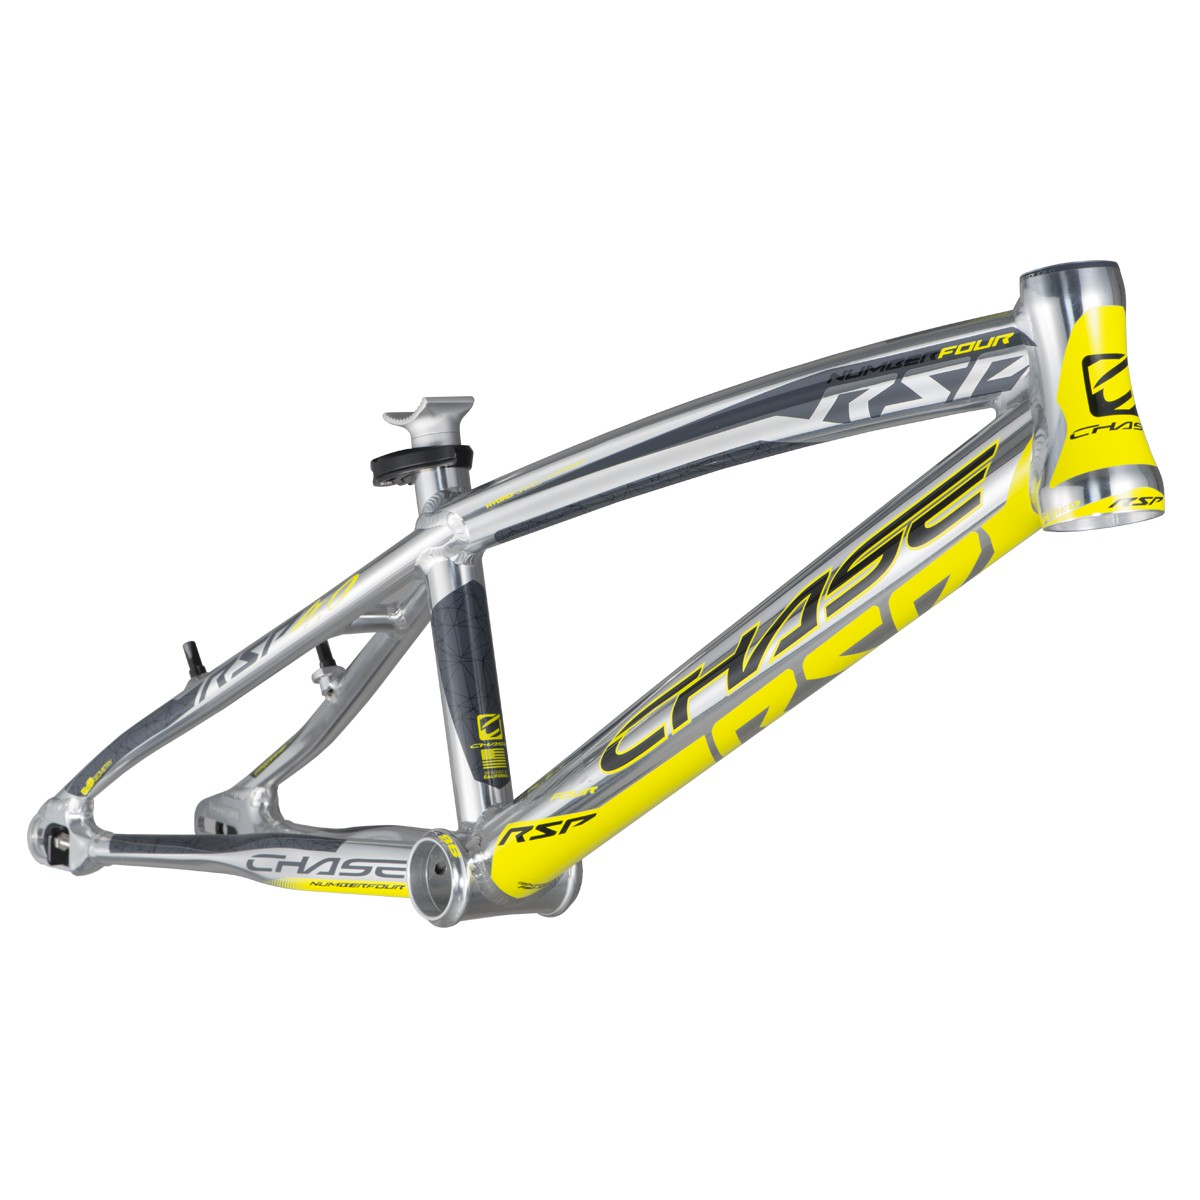 chase-rsp40-frame-polishneon-yellow (3)